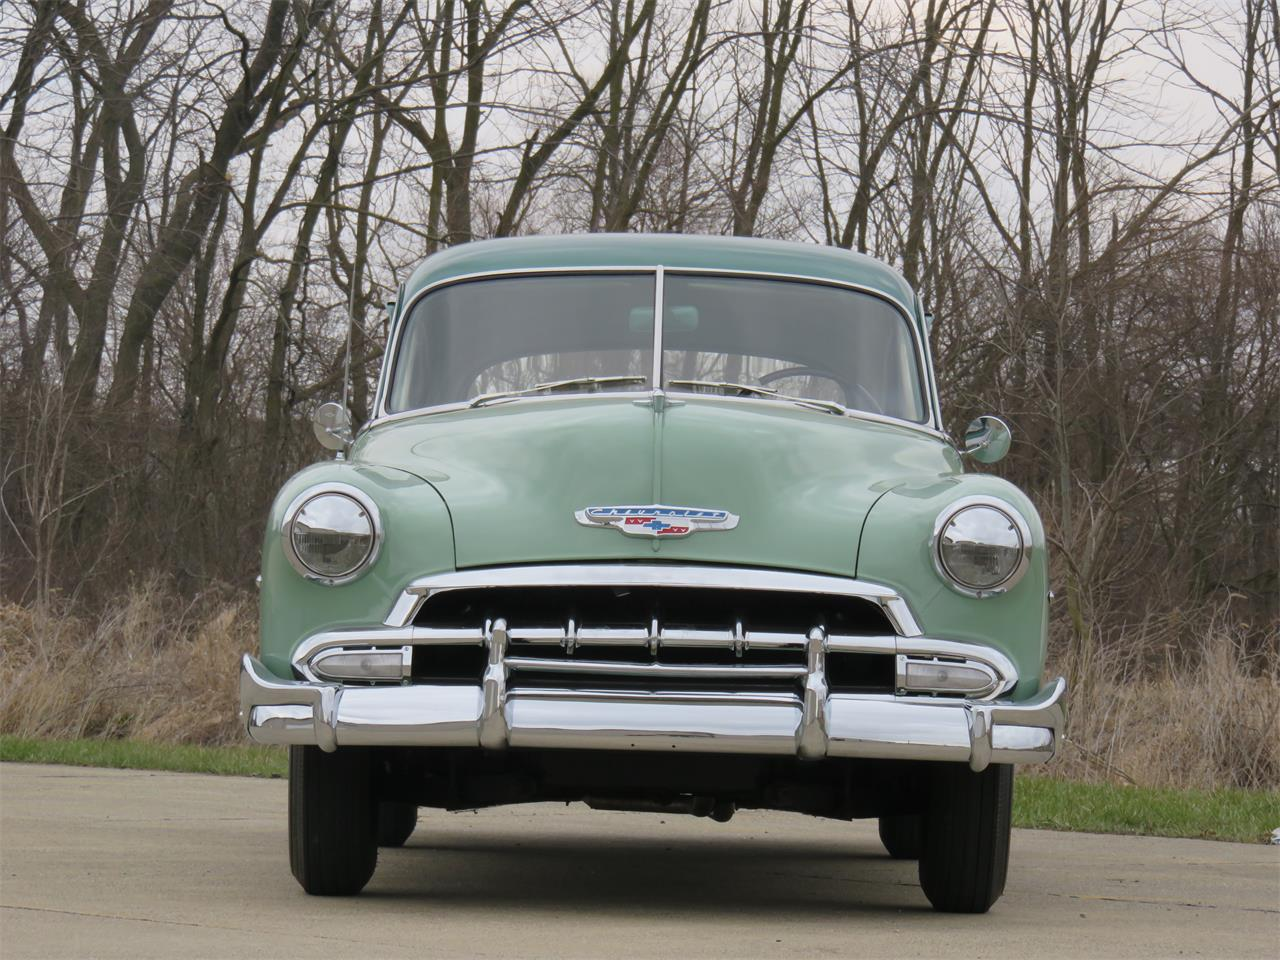 Large Picture of 1952 Chevrolet Bel Air located in Kokomo Indiana Auction Vehicle Offered by Earlywine Auctions - N81Z